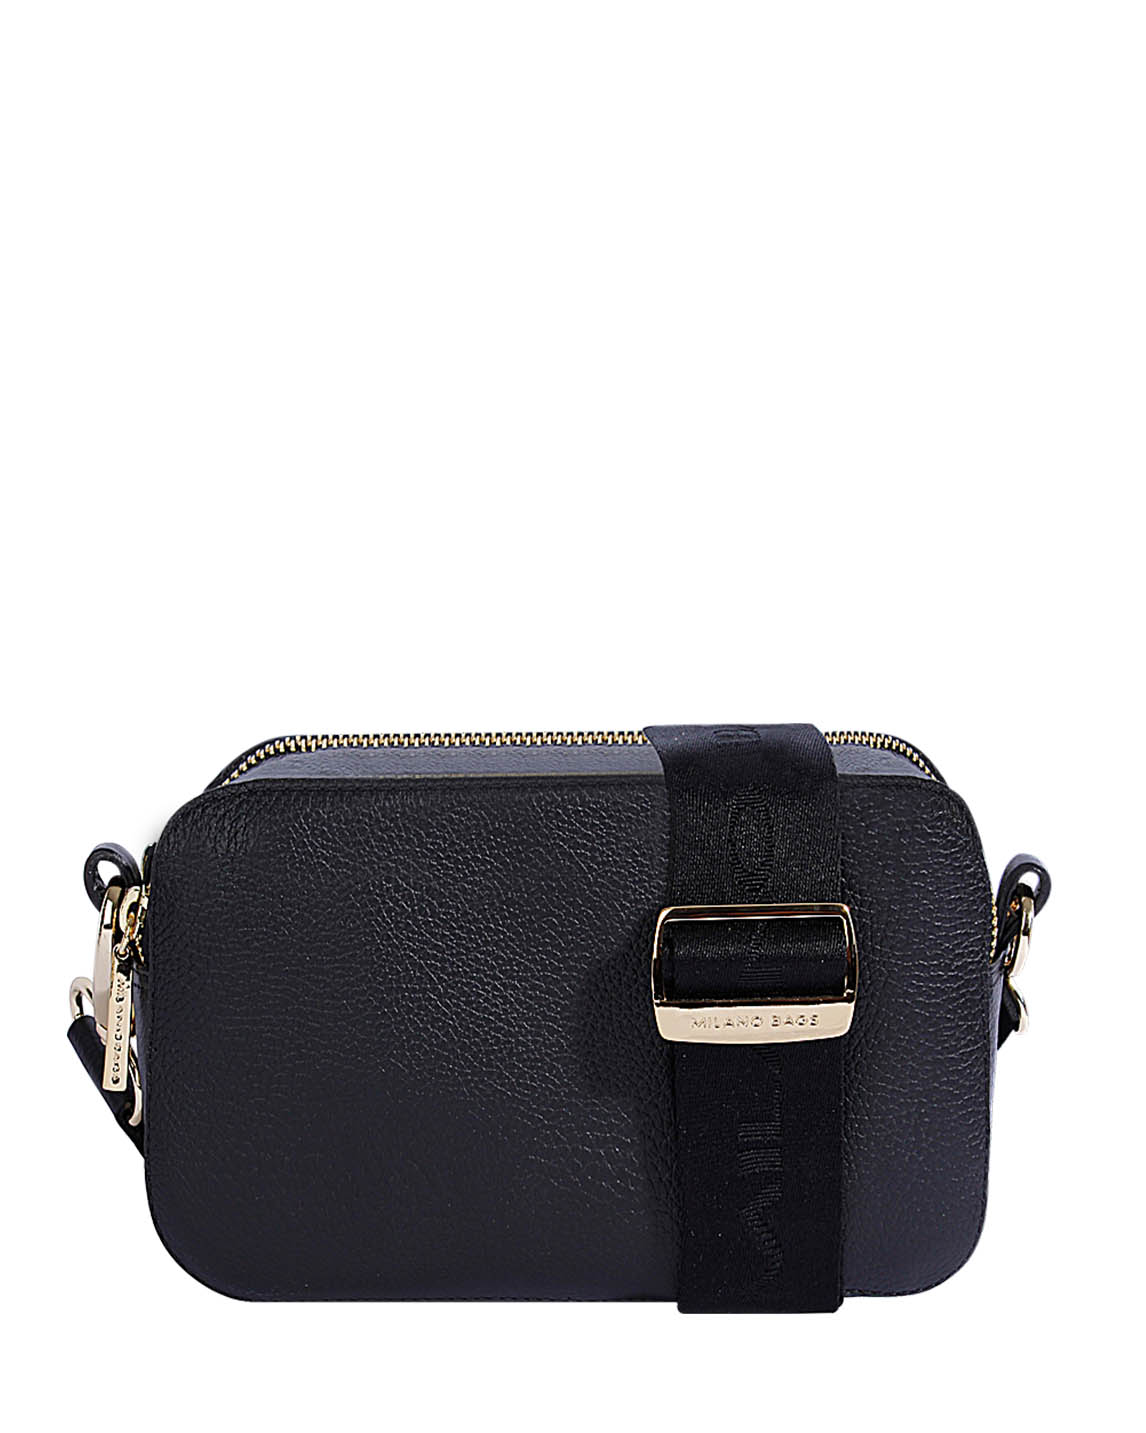 Cartera Crossbody DS-3222 Color Negro